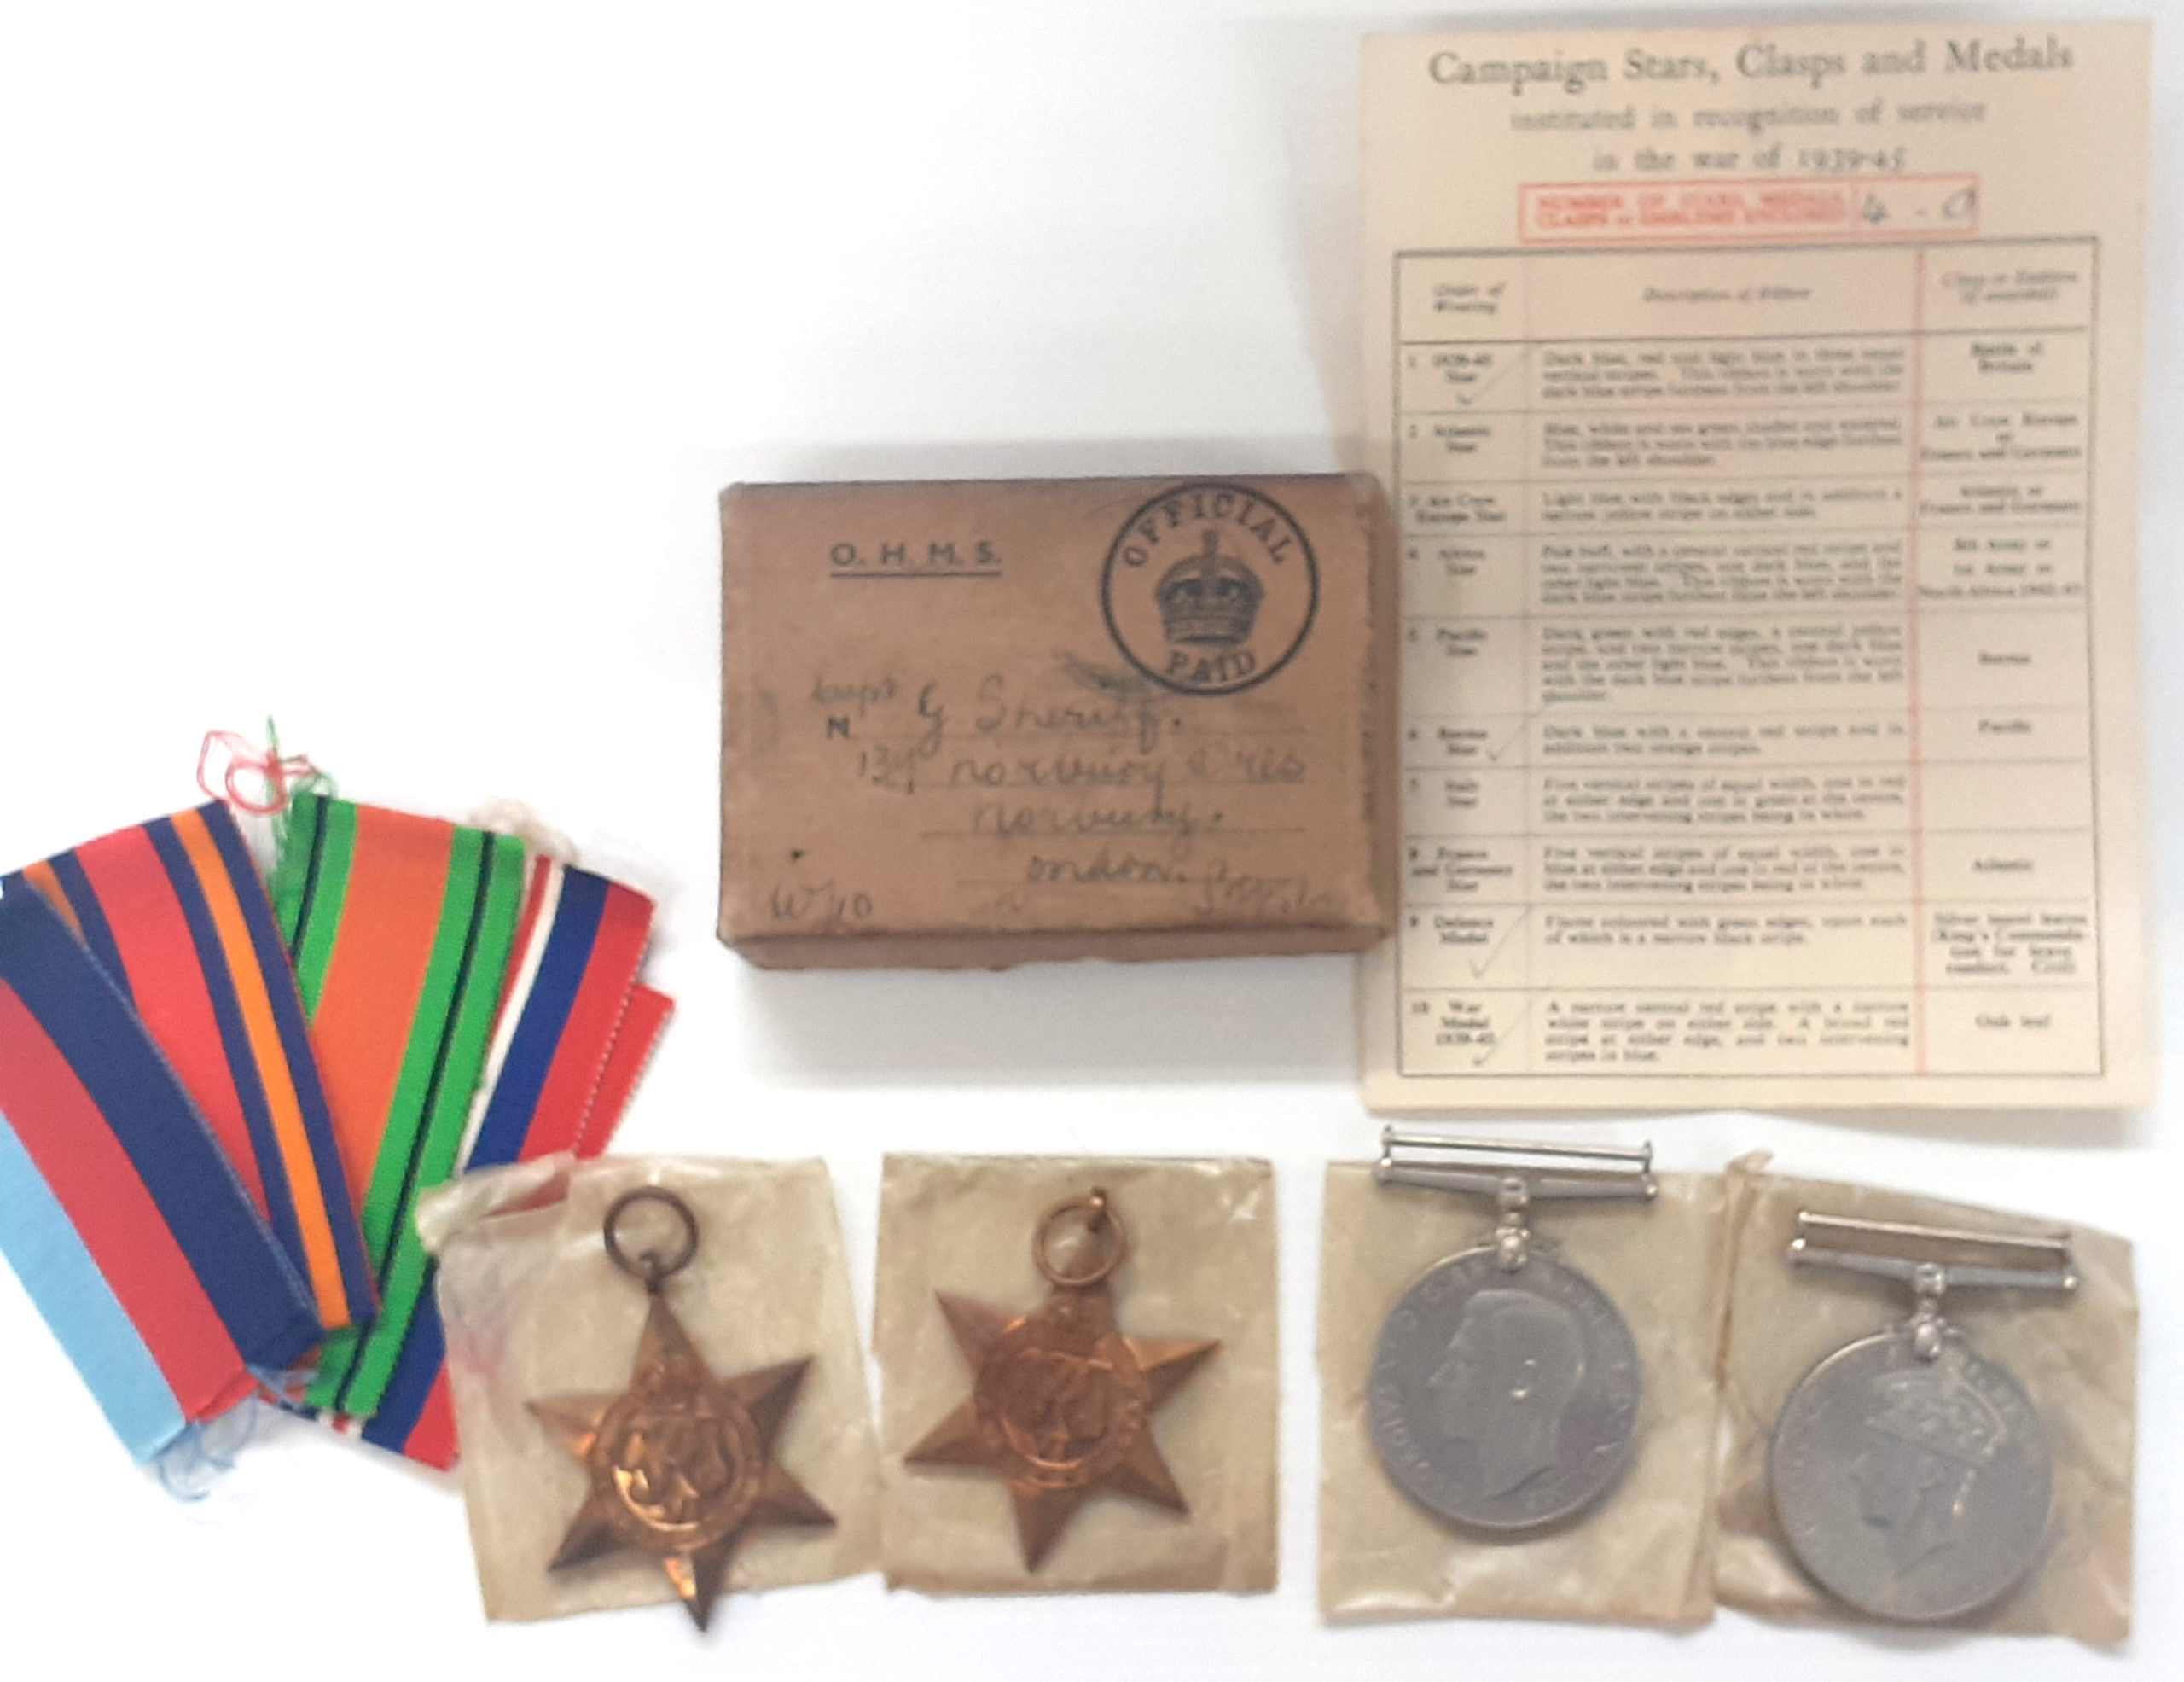 A Burma Star Officers Group attributed to Captain George Sherriff